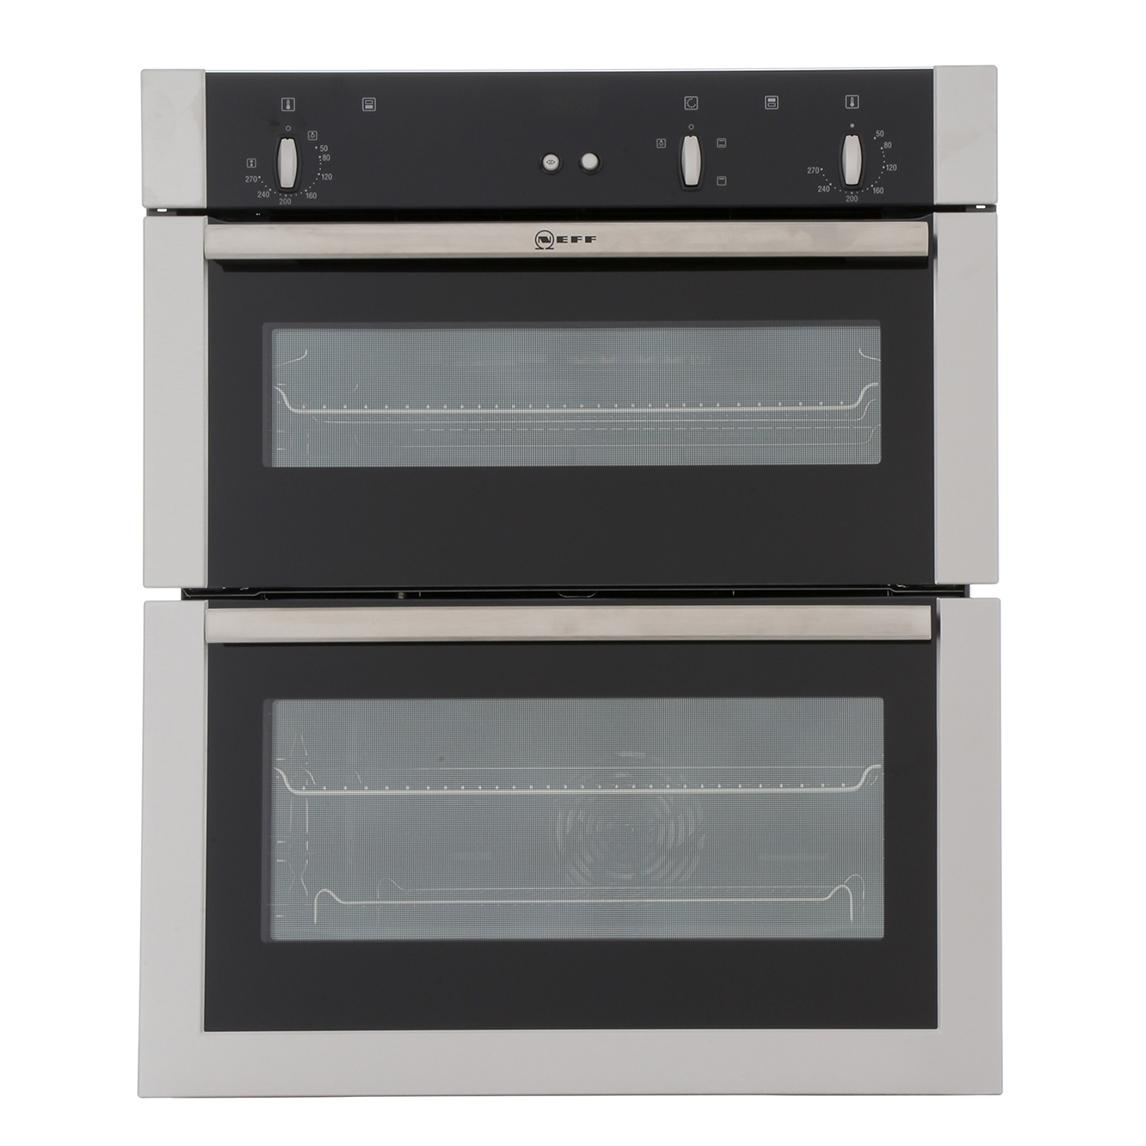 Neff U17S32N5GB Double Built Under Electric Oven